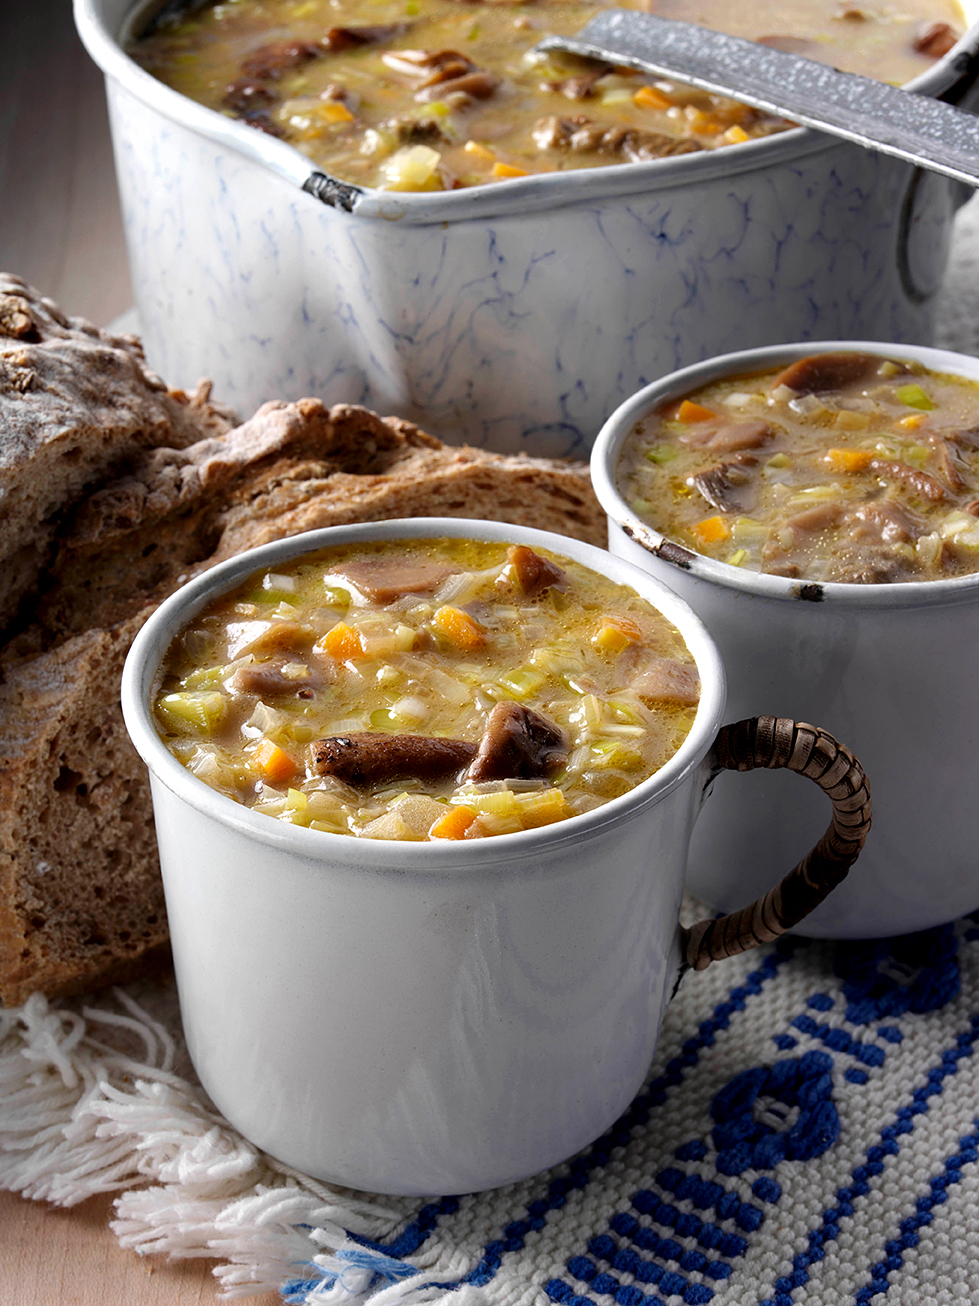 Mugs of Polish mushroom soup